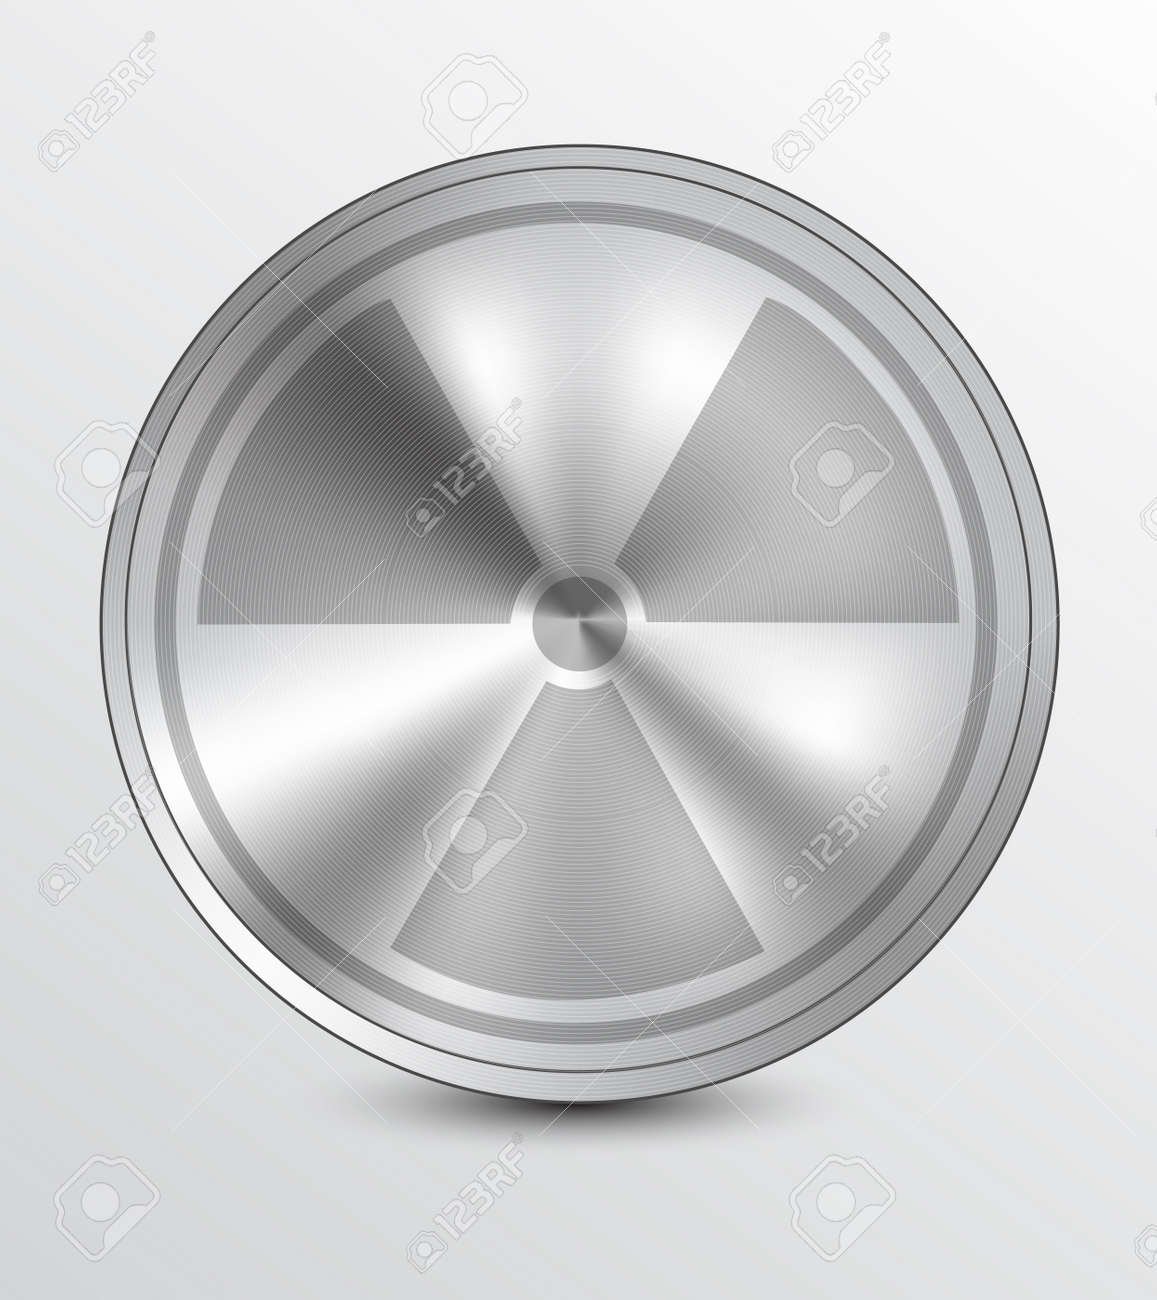 Nuclear icon Stock Vector - 21059820